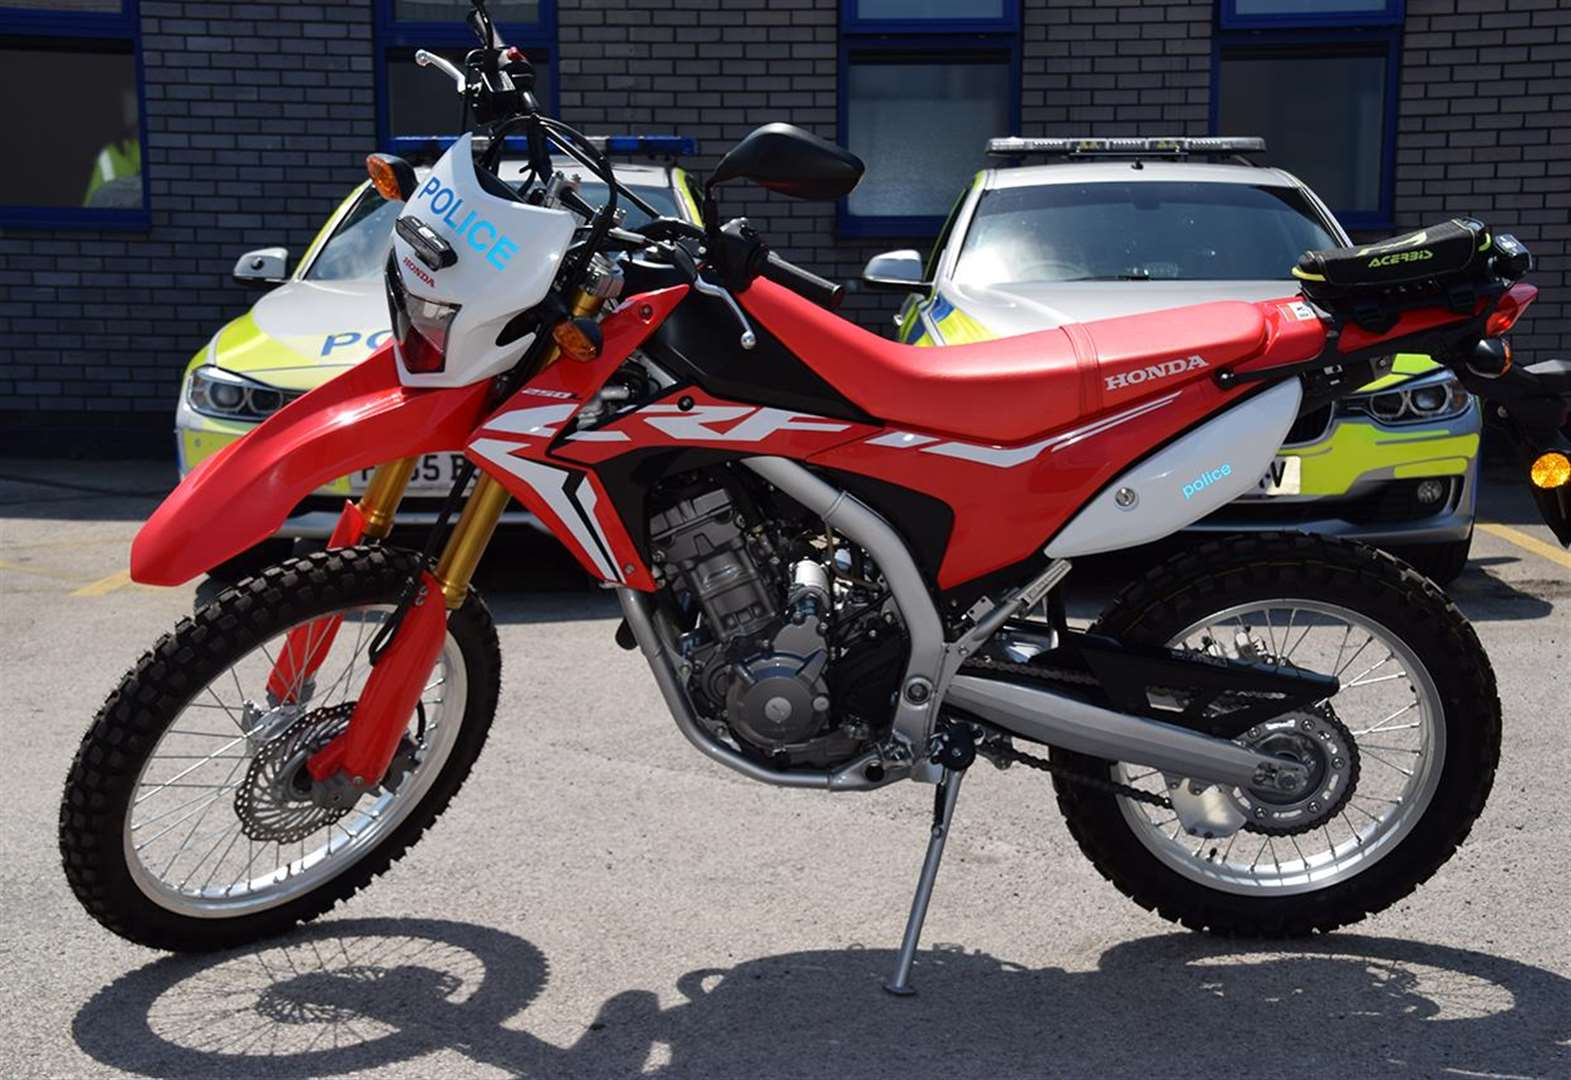 Police trial off road motorcycle to fight crime